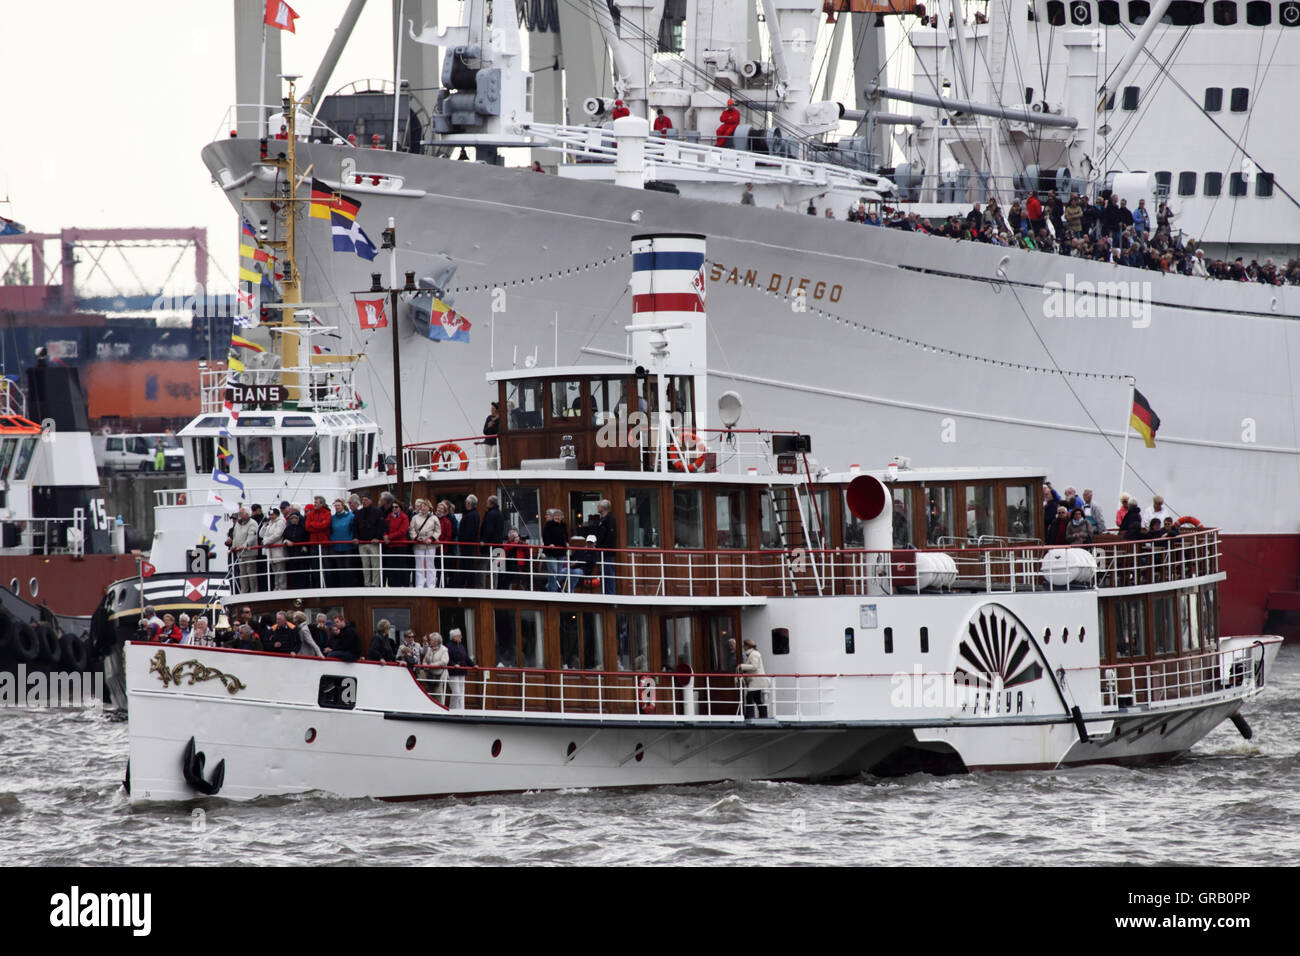 Hamburg Harbours Birthday, The Cap San Diego And Steamboat Freya - Stock Image